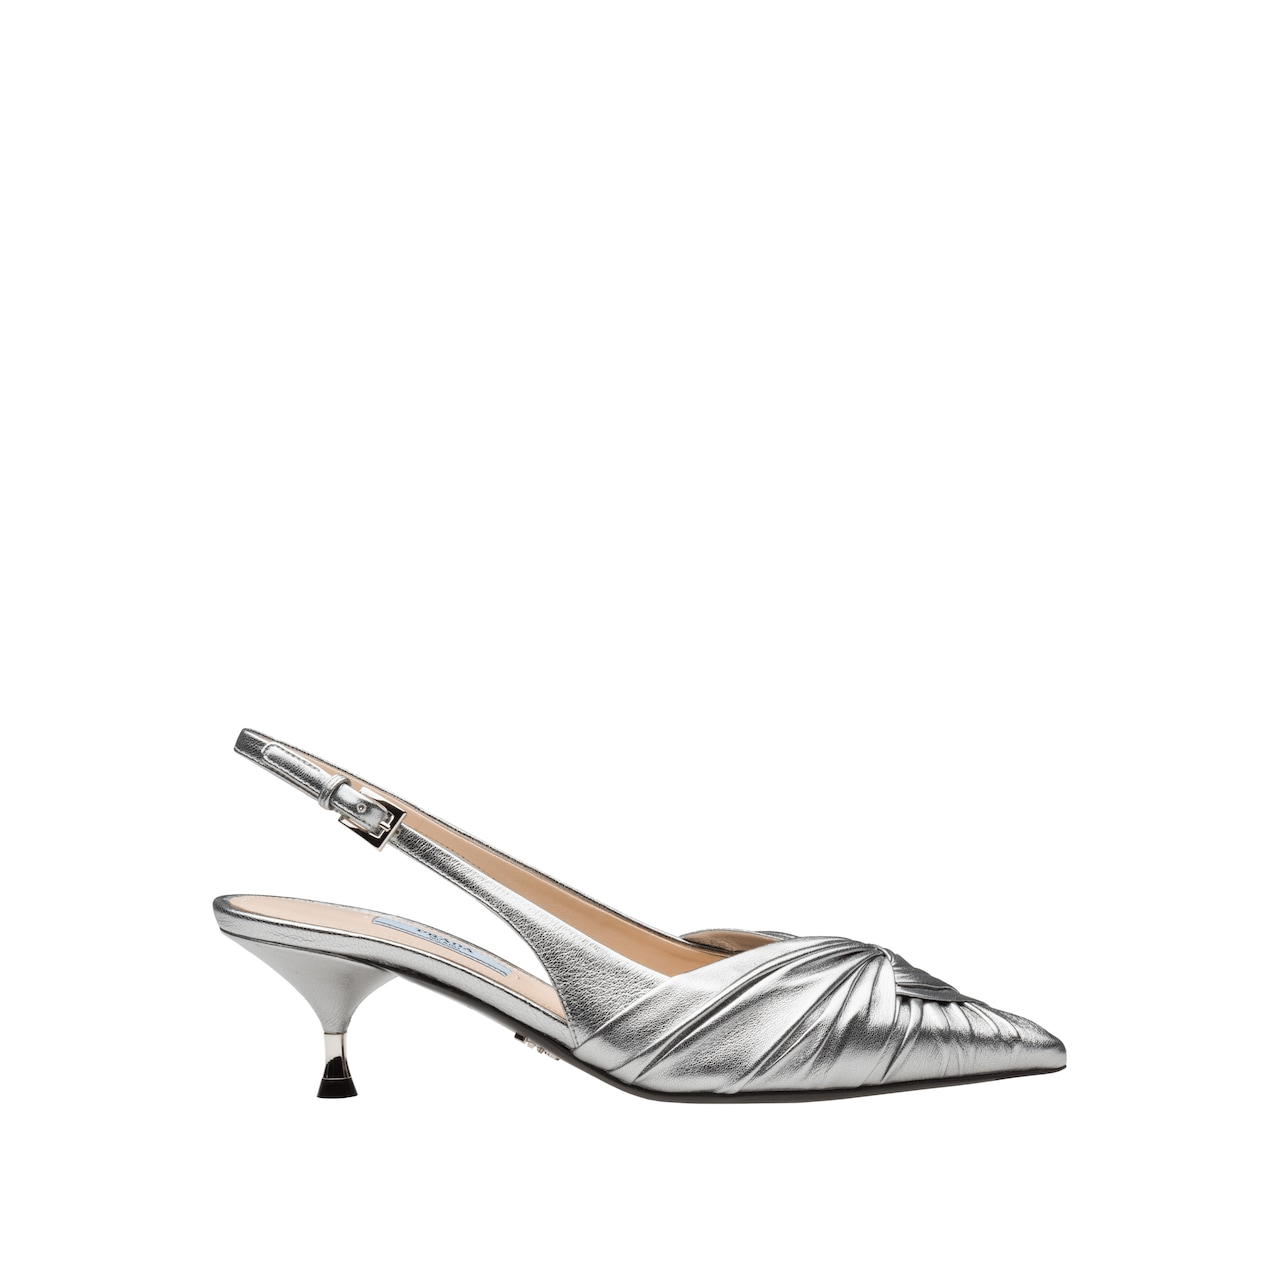 Laminated nappa leather slingbacks